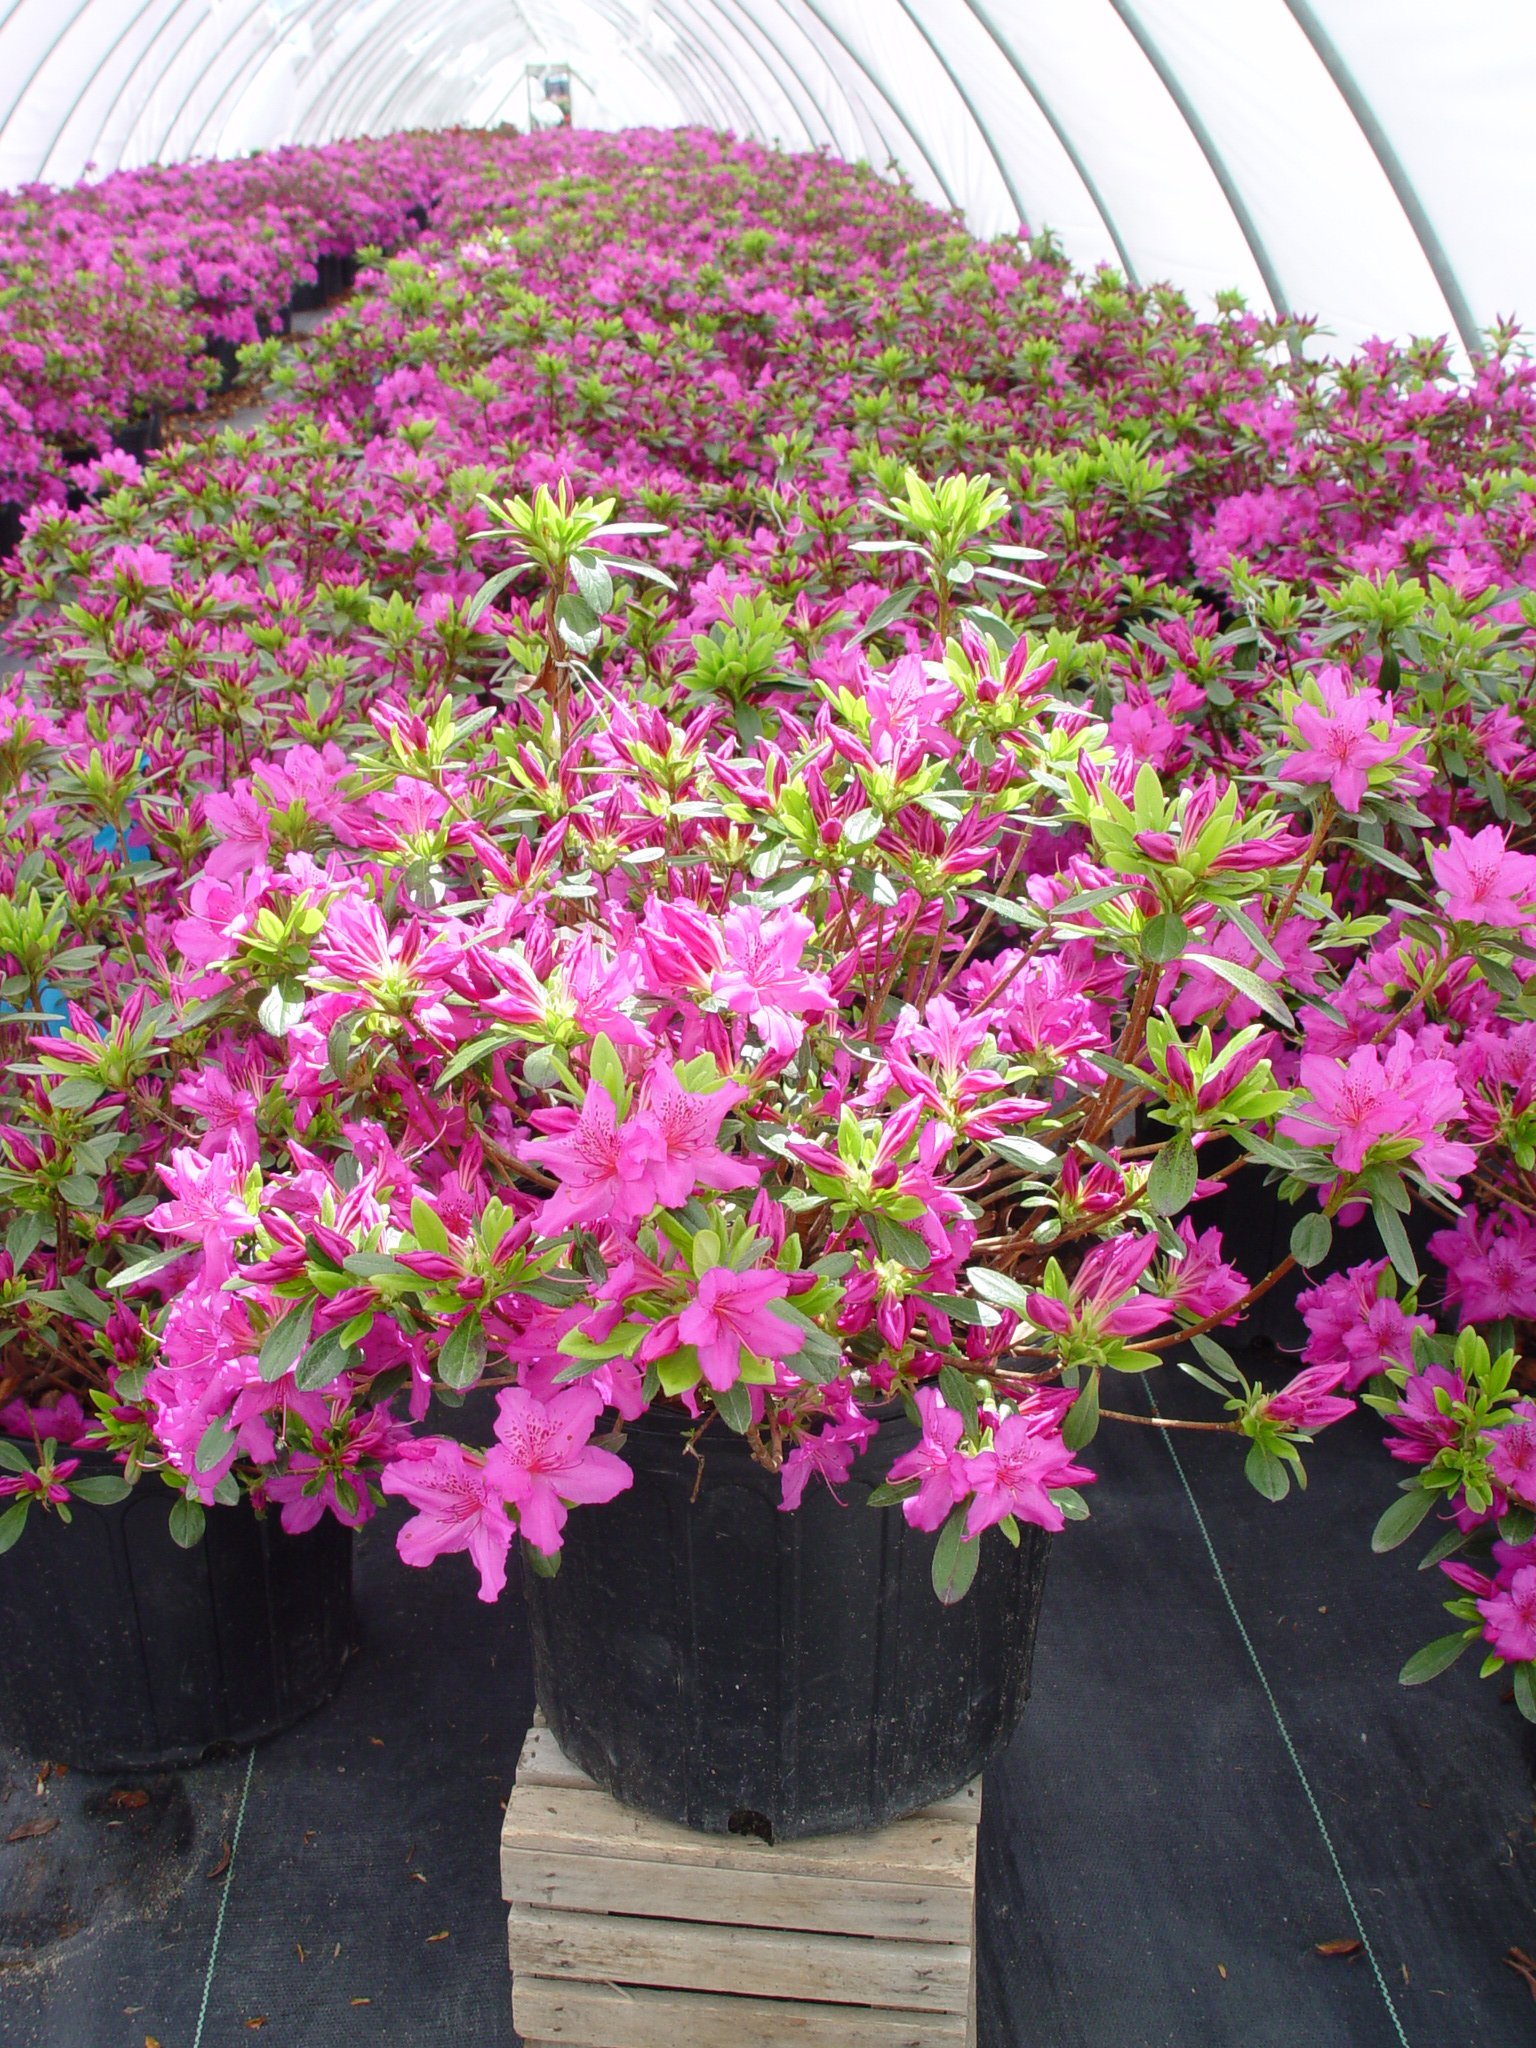 Azalea 'Karen' (Azalea) Shrub, lavender flowers, #3 - Size Container by Green Promise Farms (Image #3)